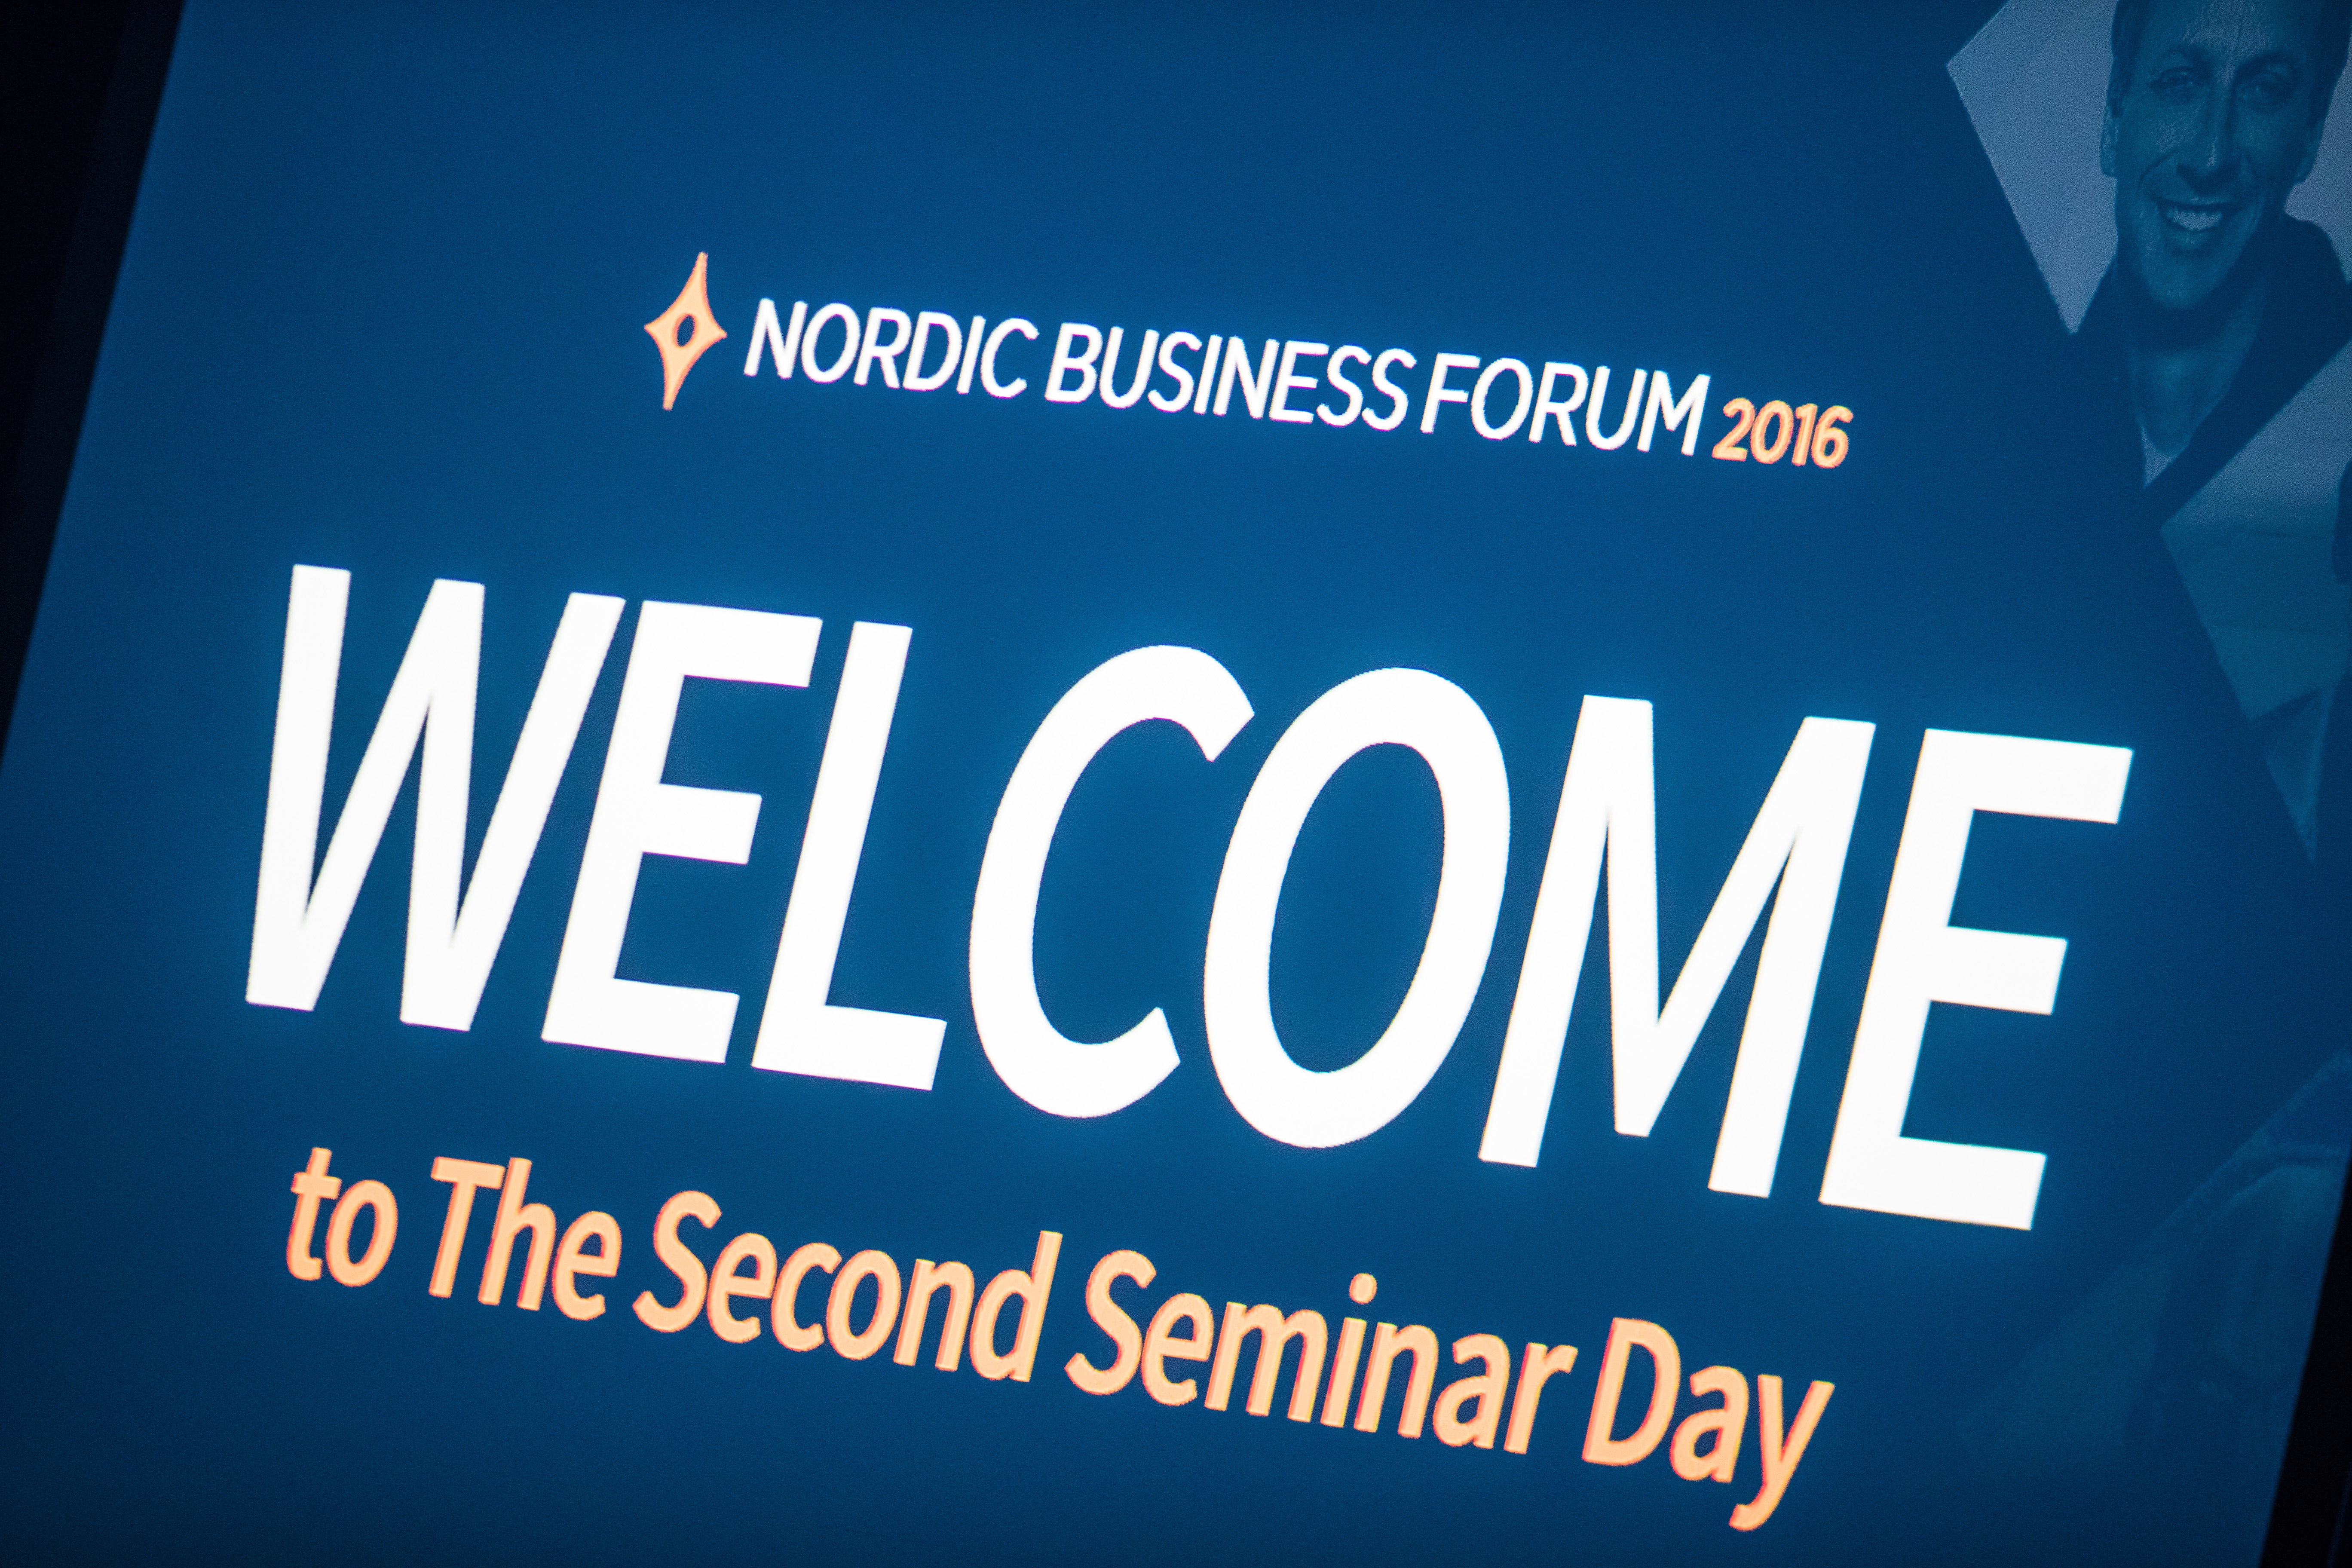 https://cocomms.com/2016/10/10/mita-nordic-business-forum-opetti-viestinnasta-part-deux/